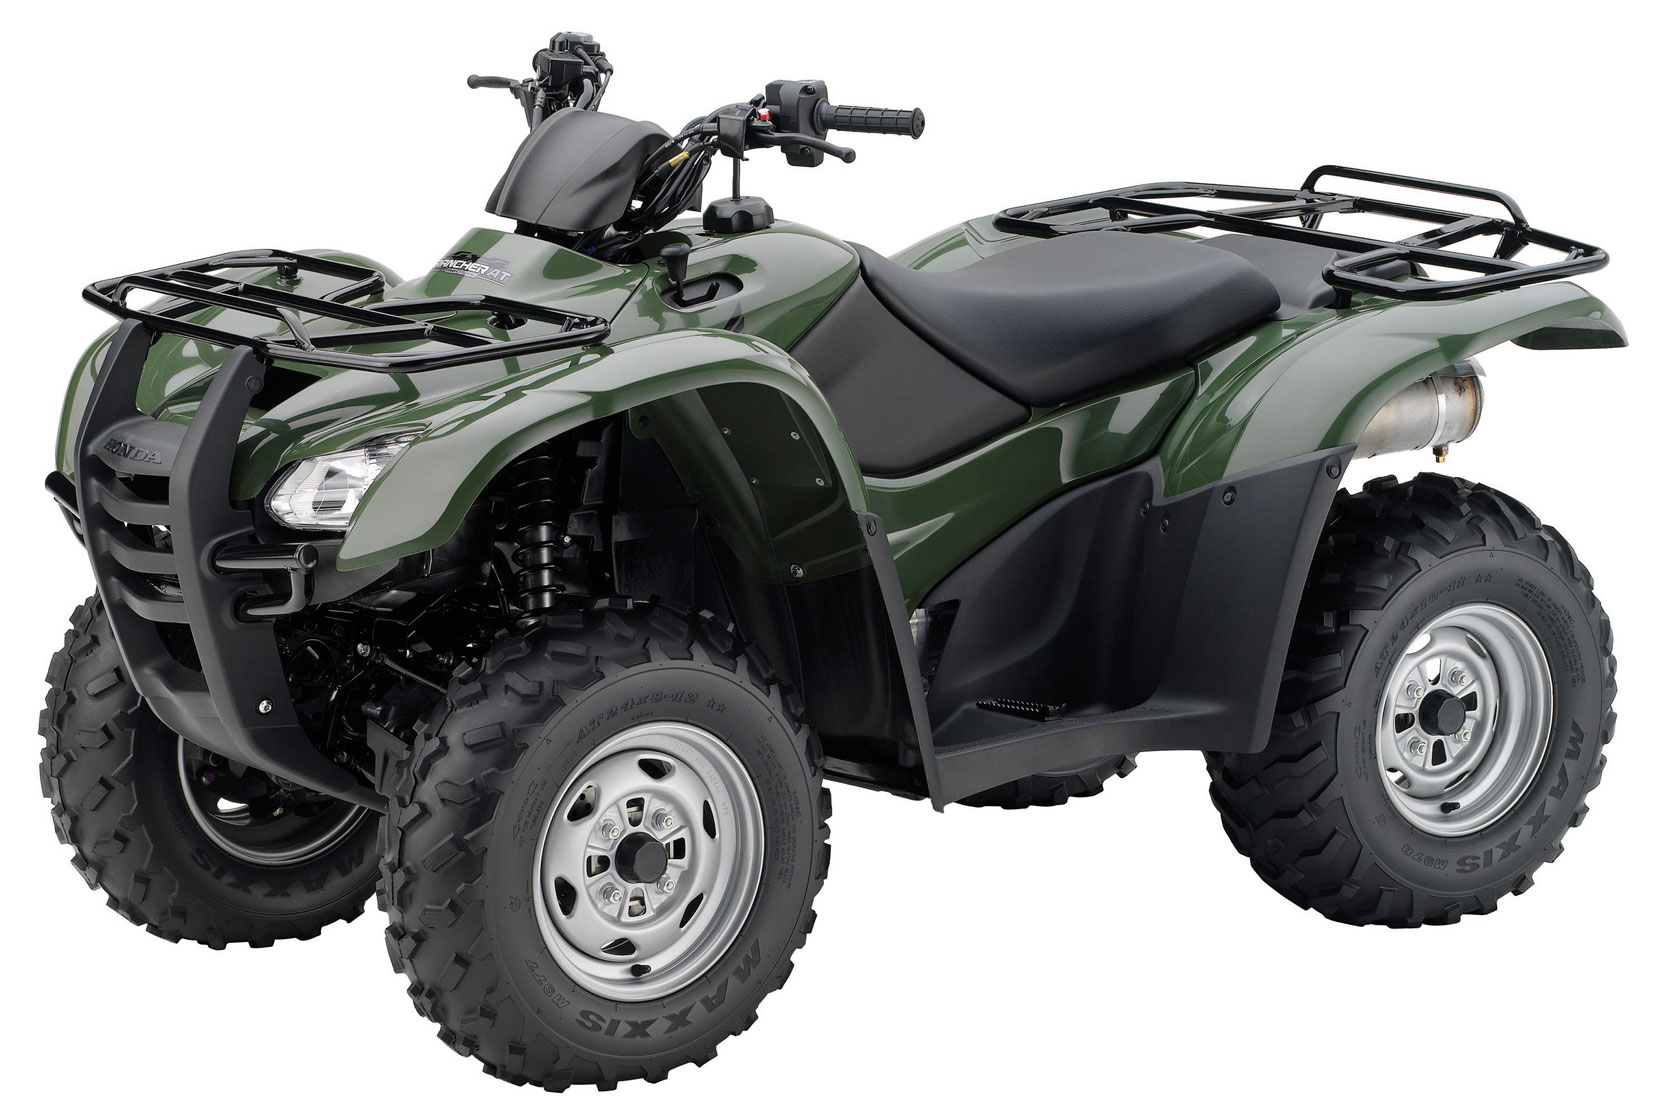 Honda Fourtrax Rancher At With Power Steering Trx420fpa